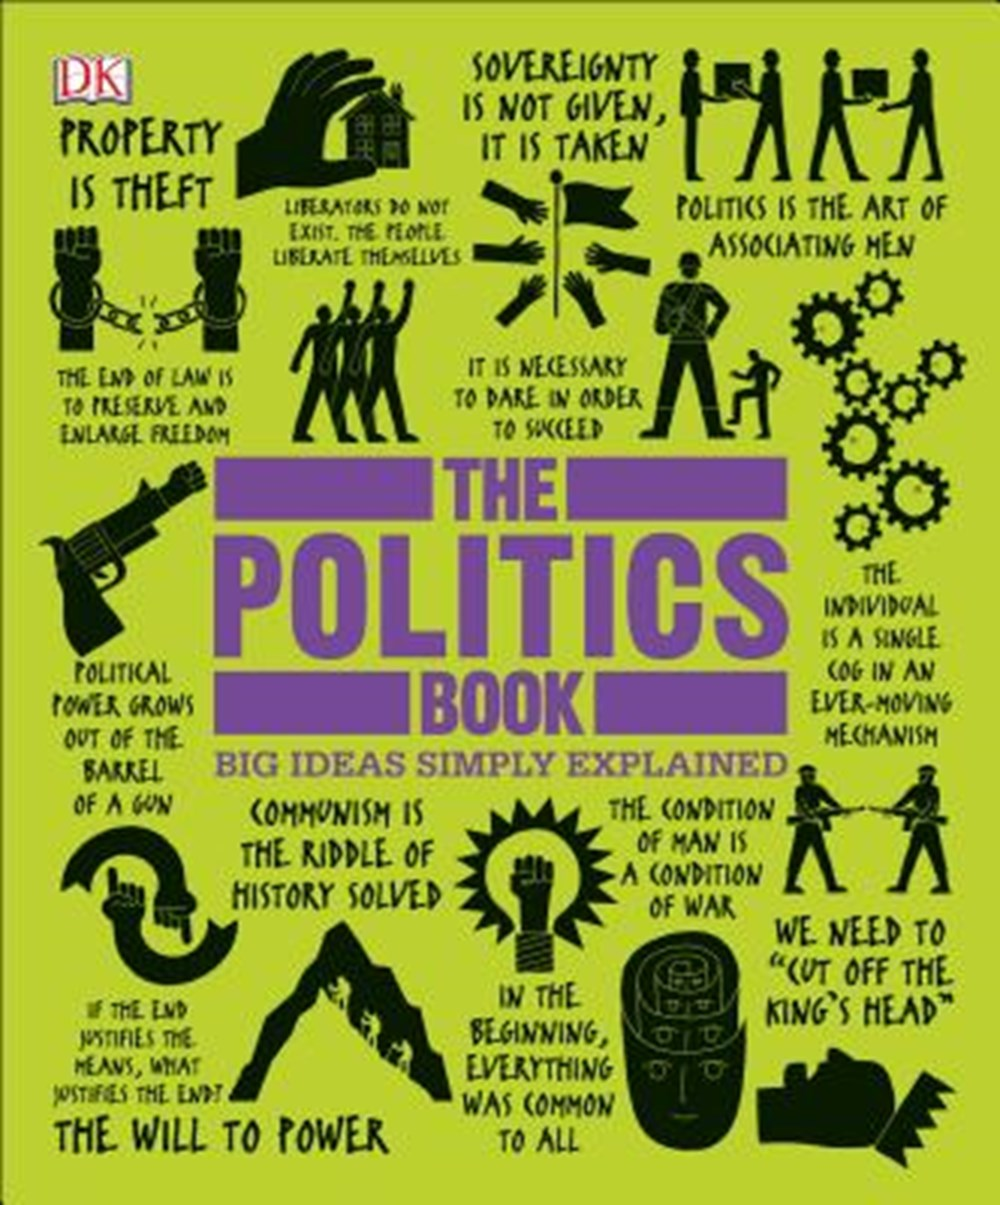 Politics Book Big Ideas Simply Explained